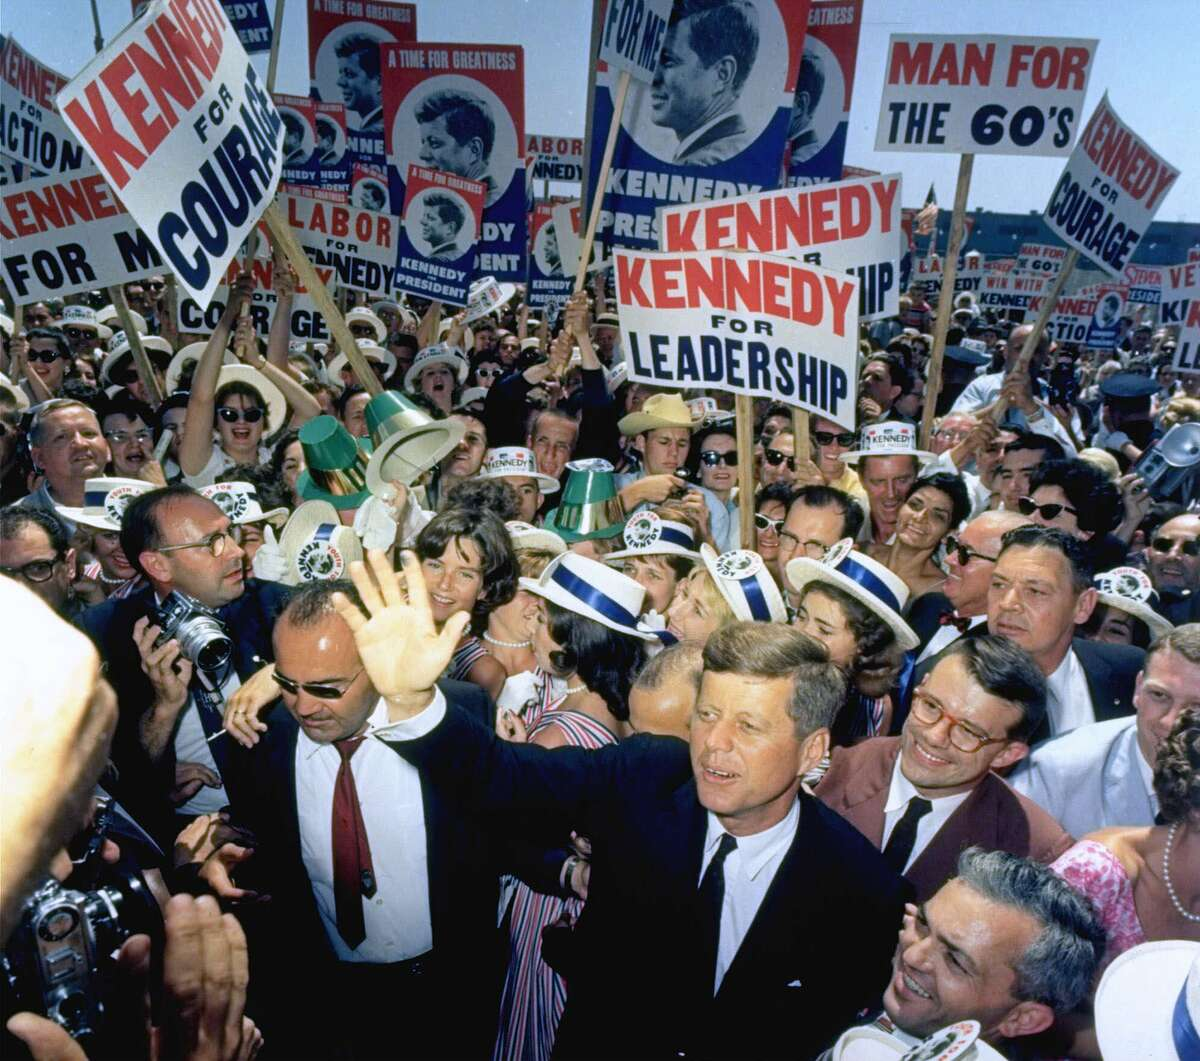 Sen. John F. Kennedy made his way through a crowd of supporters and journalists in Los Angeles on July 9, 1960, at the Democratic National Convention. Kennedy's election in 1960 helped to bolster the spirits of many Americans from